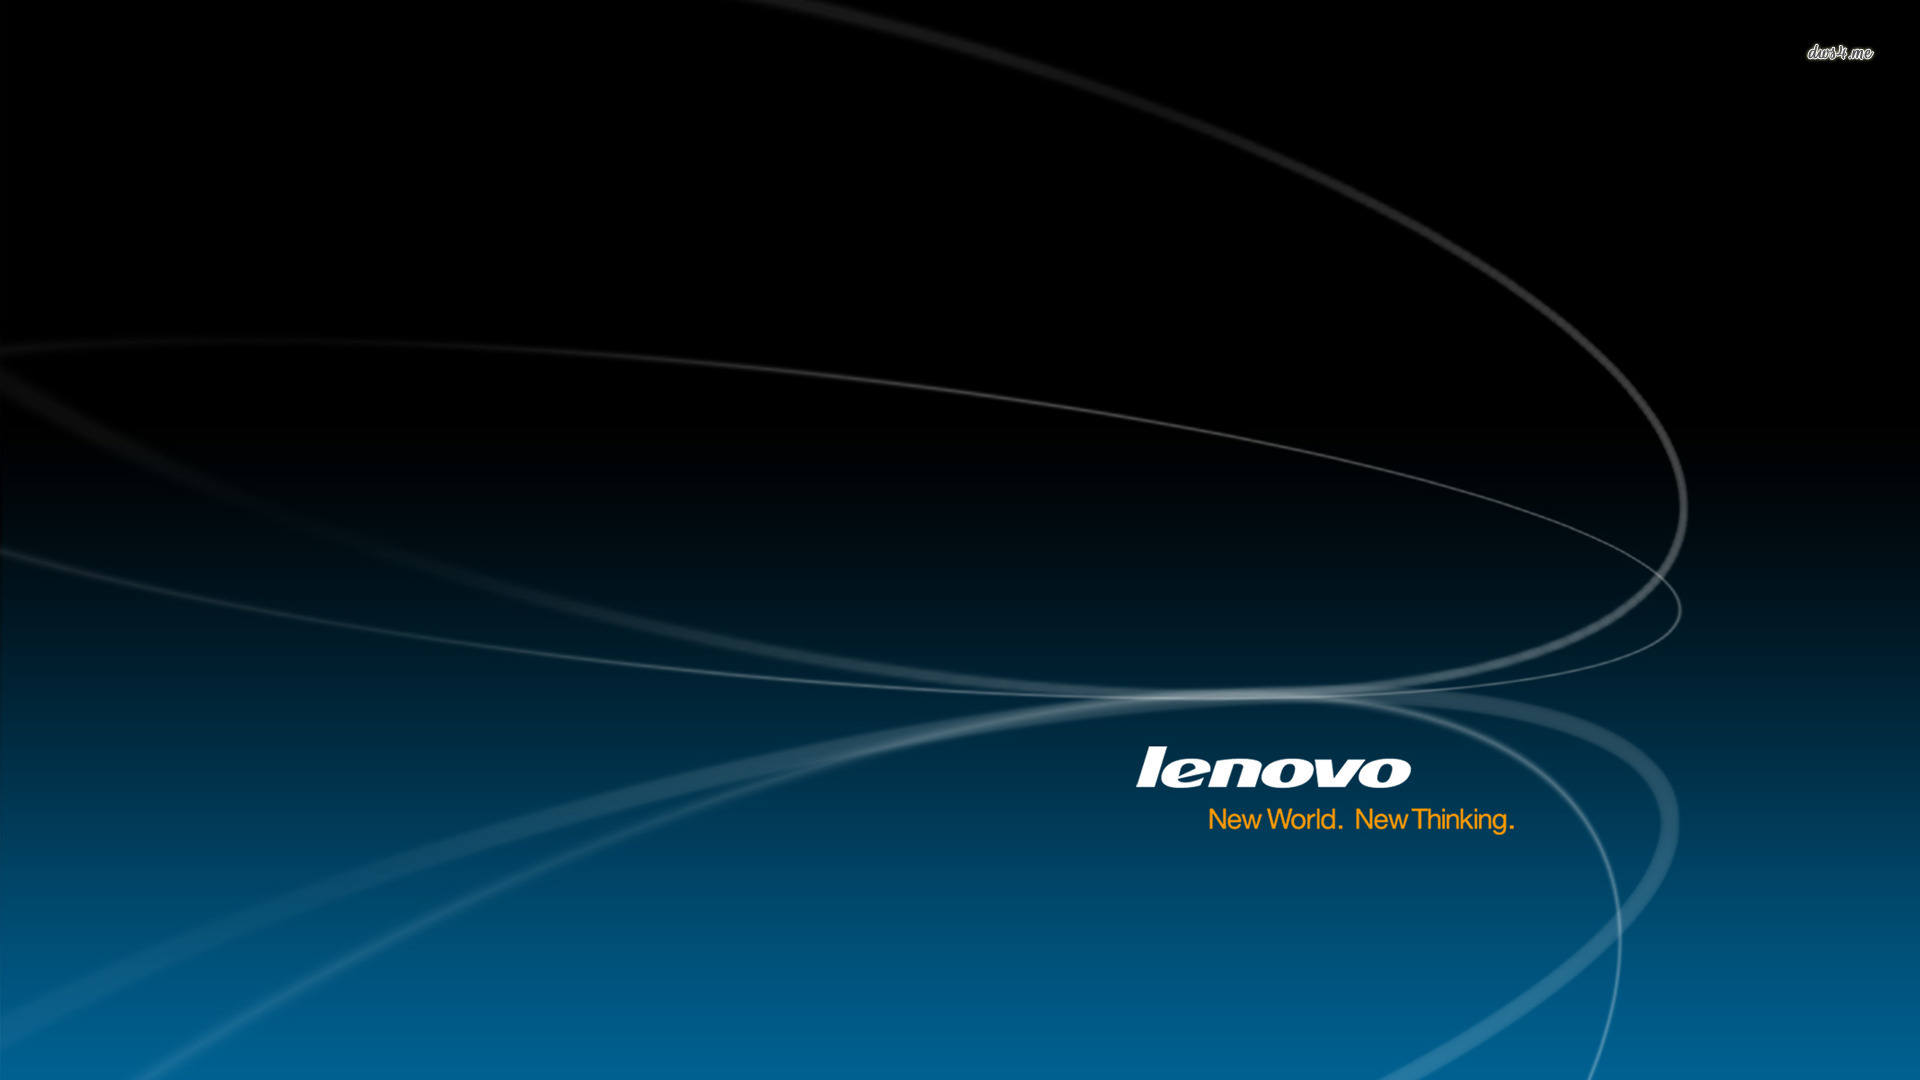 Lenovo Wallpaper Free Download